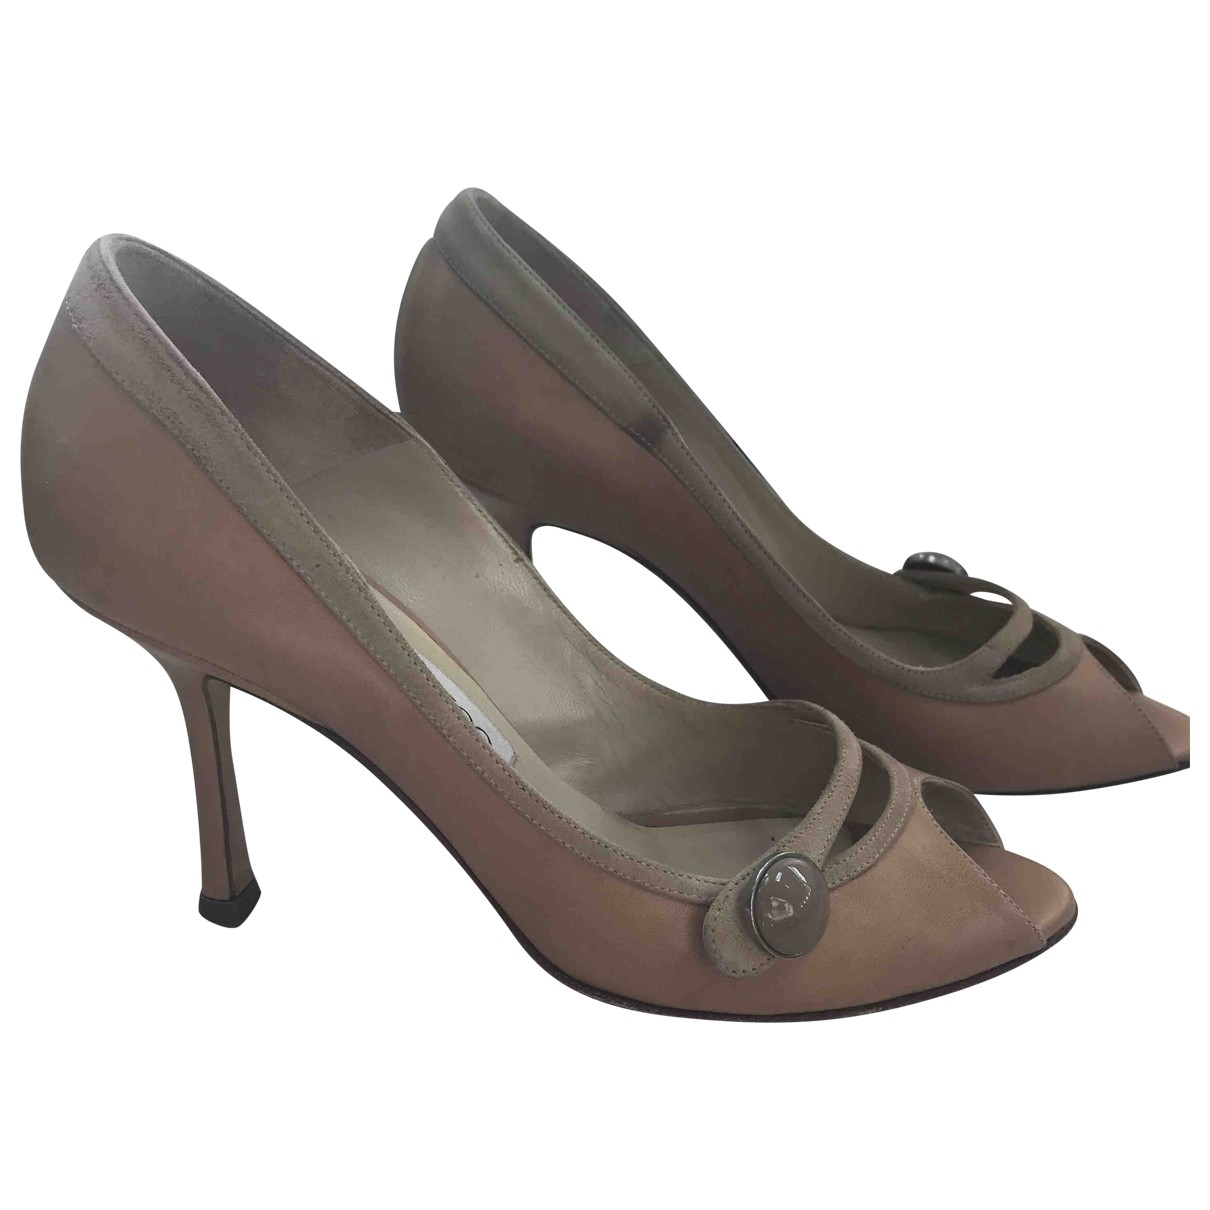 Jimmy Choo \N Beige Leather Heels for Women 37 EU